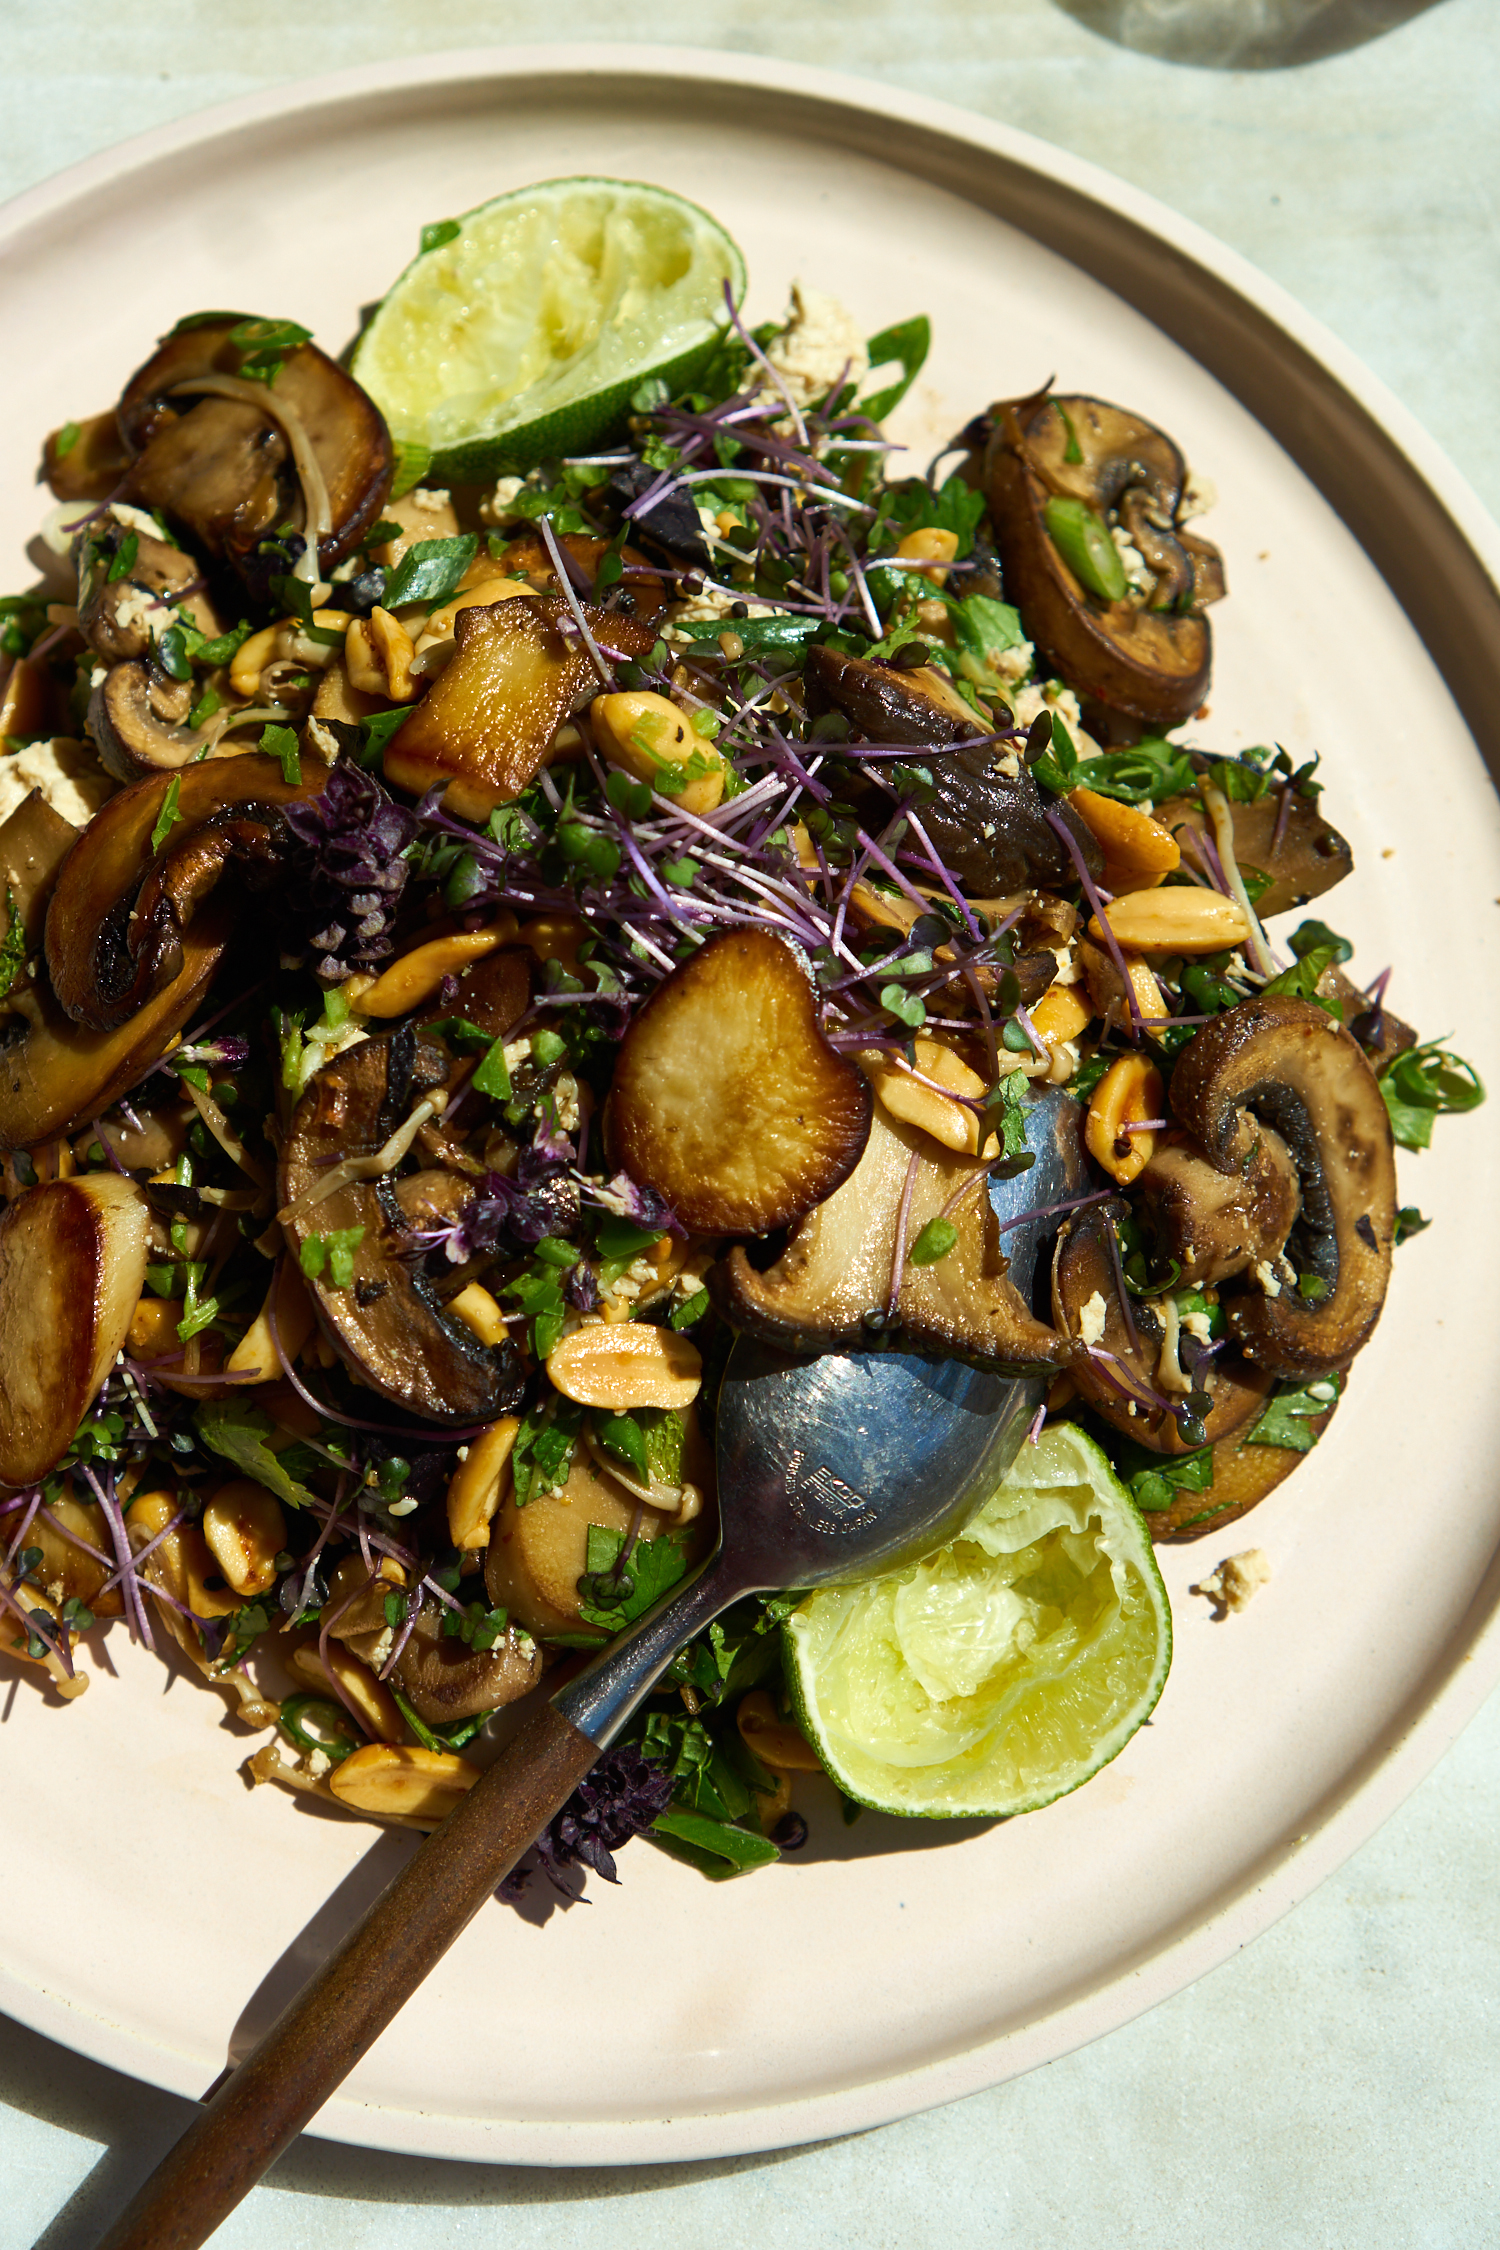 Quick Lime and Mushroom Salad